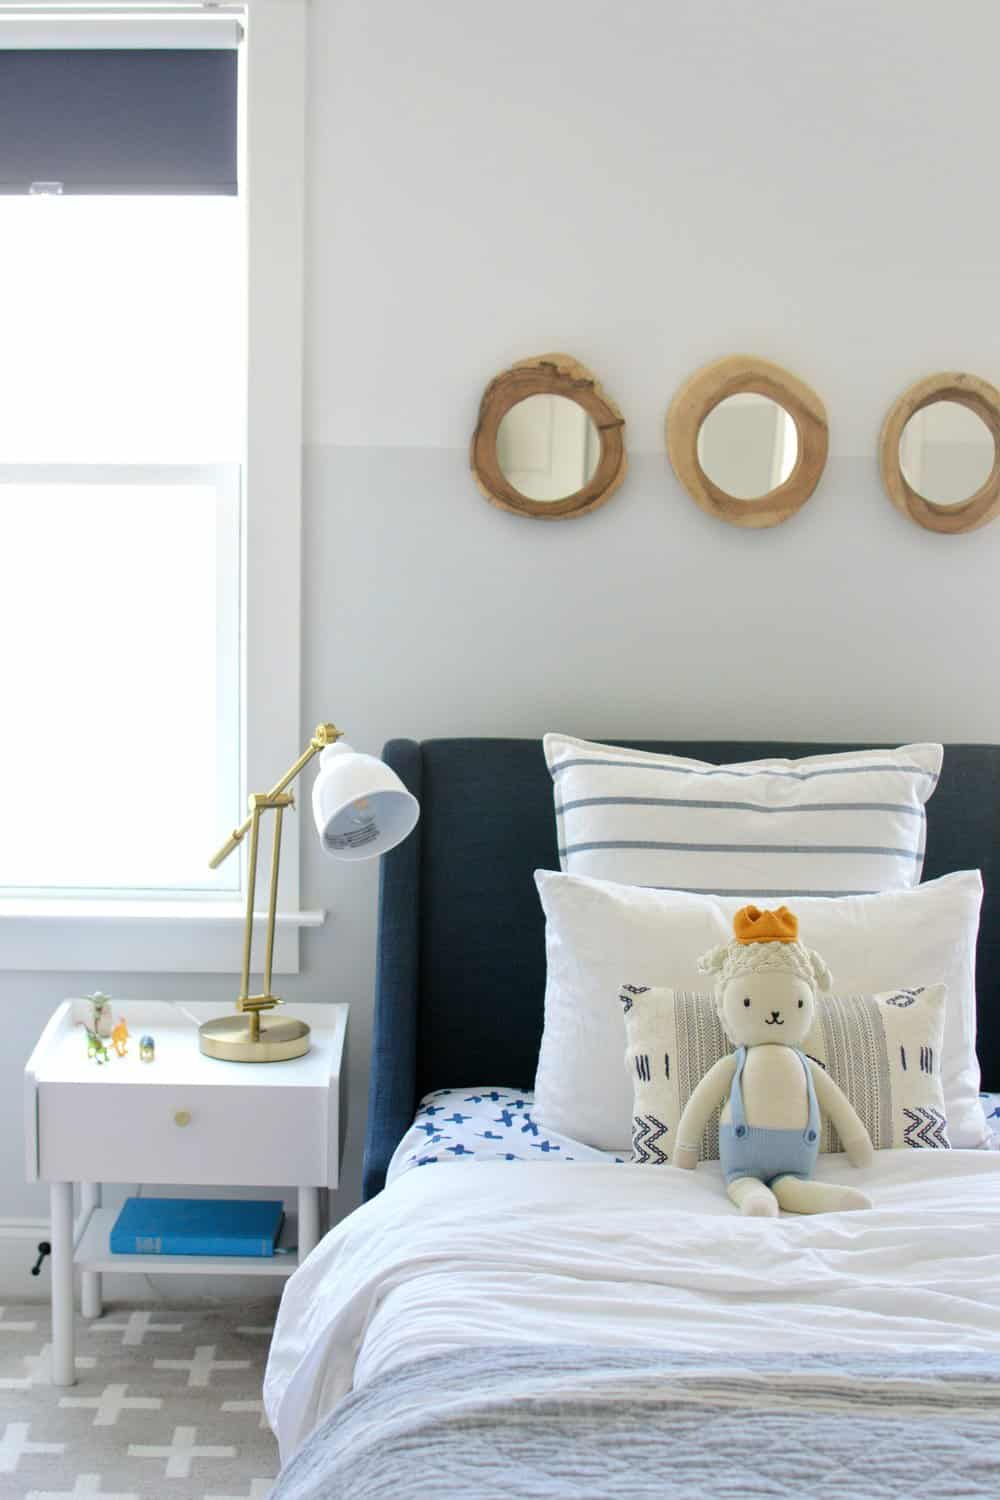 3 mirror above the bed with walls painted two tone, half gray half white